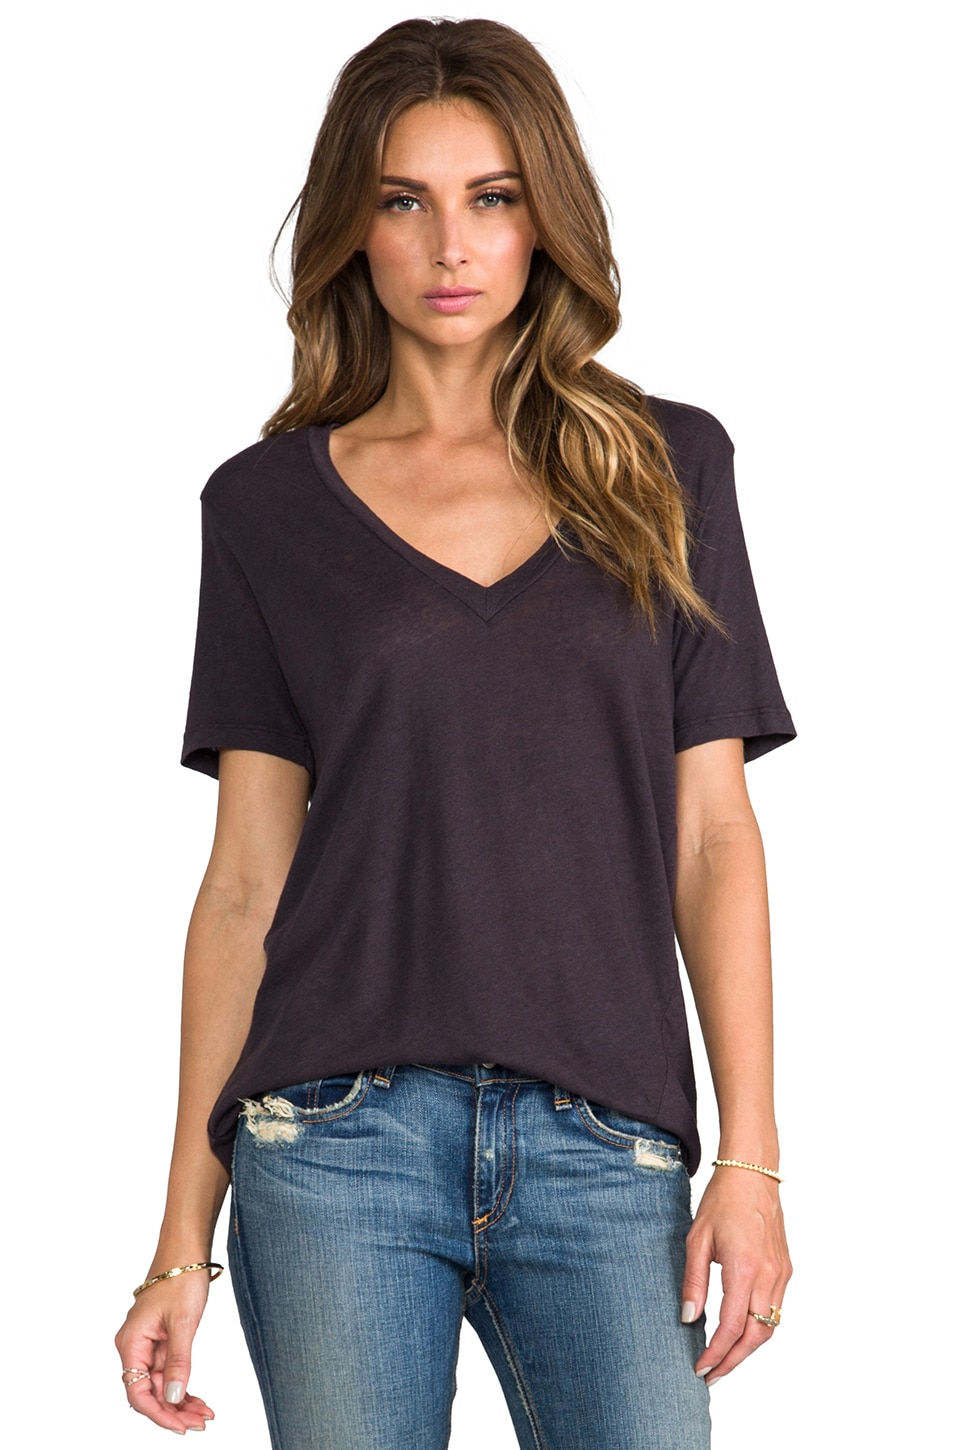 My Line Jezebel V Neck in Bat